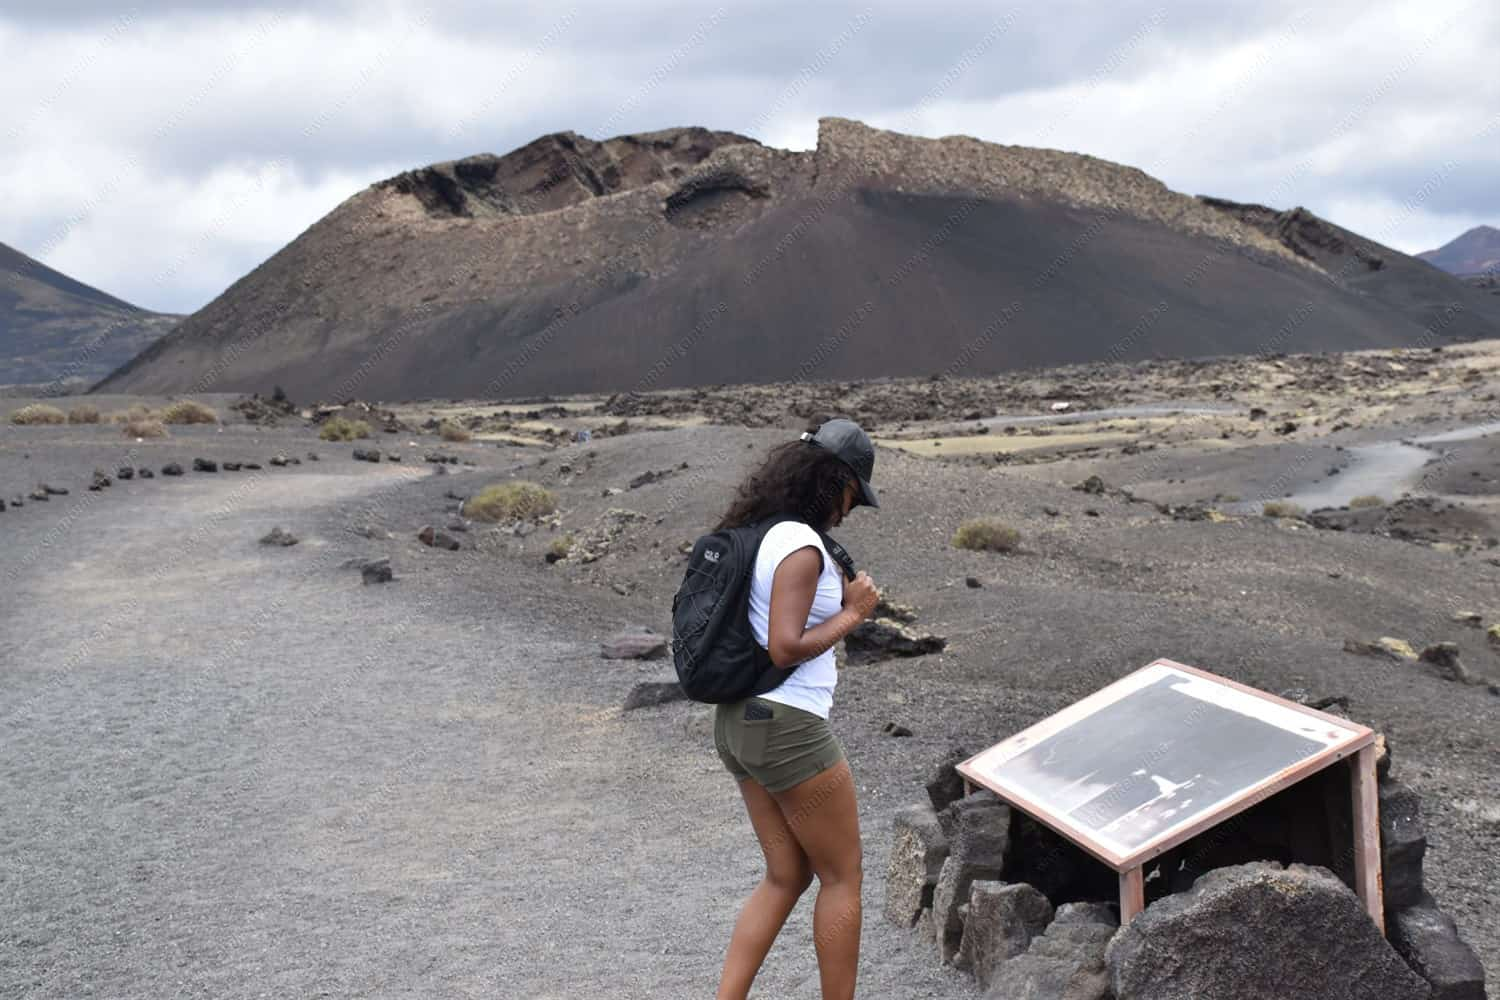 Hiking at the Volcan el Cuervo, Lanzarote